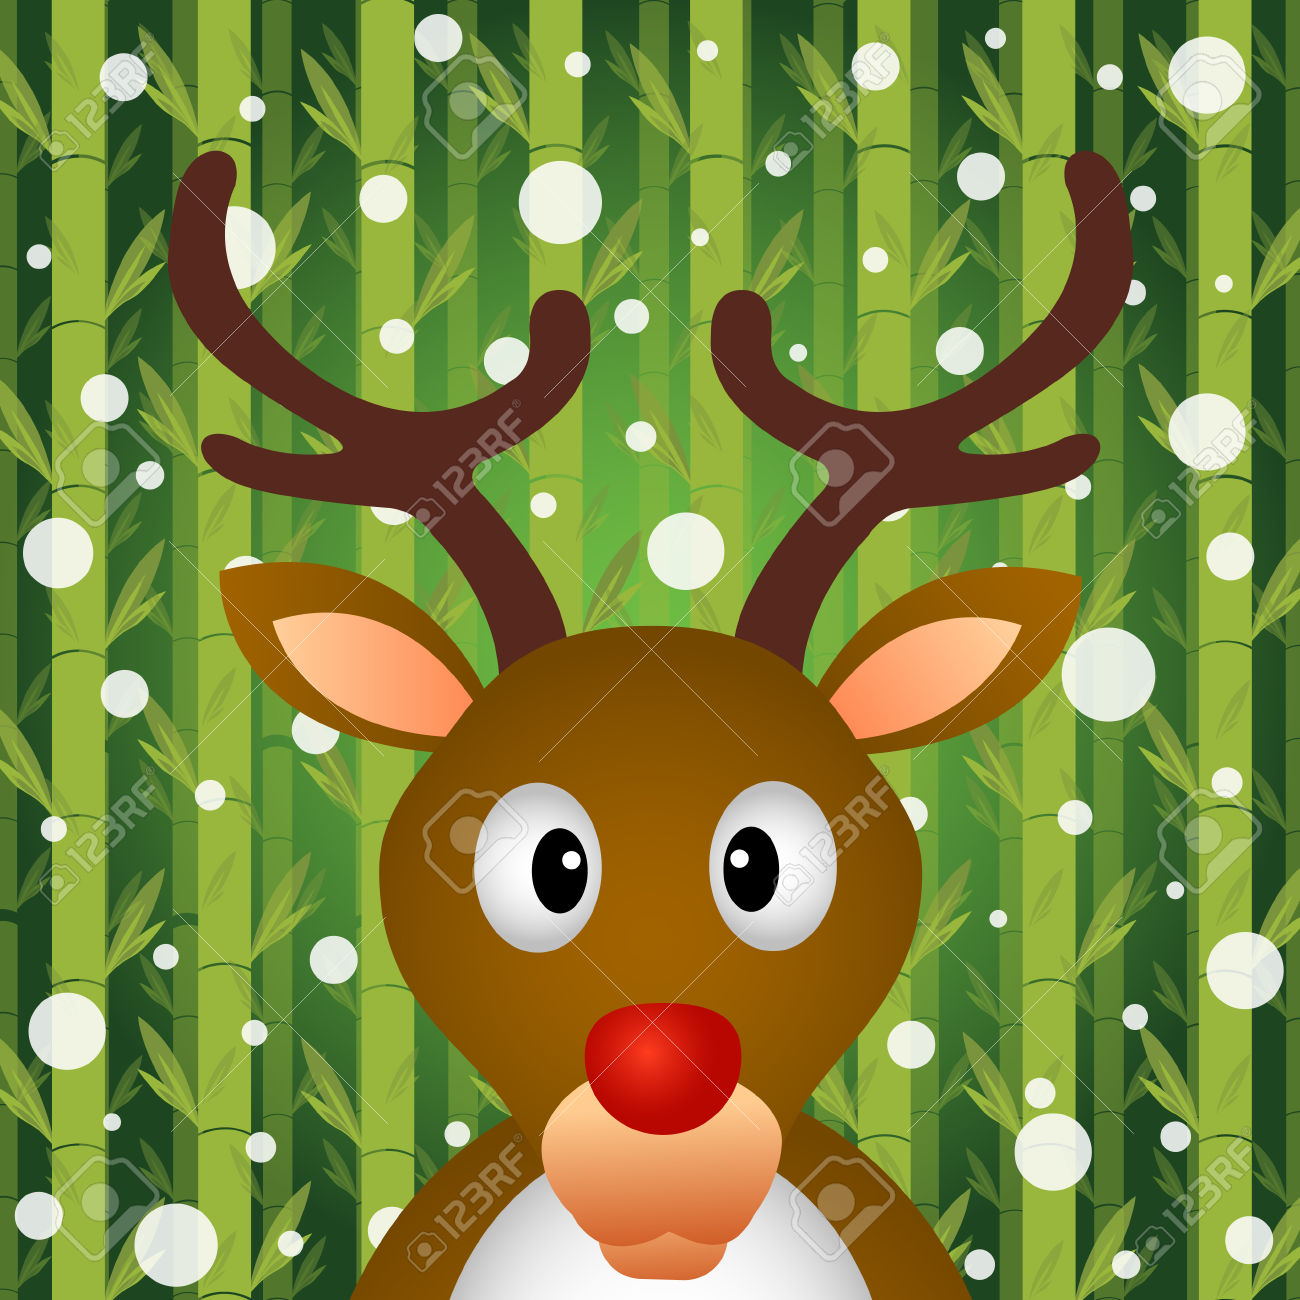 Reindeer And Snow On Bamboo Background Royalty Free Cliparts.